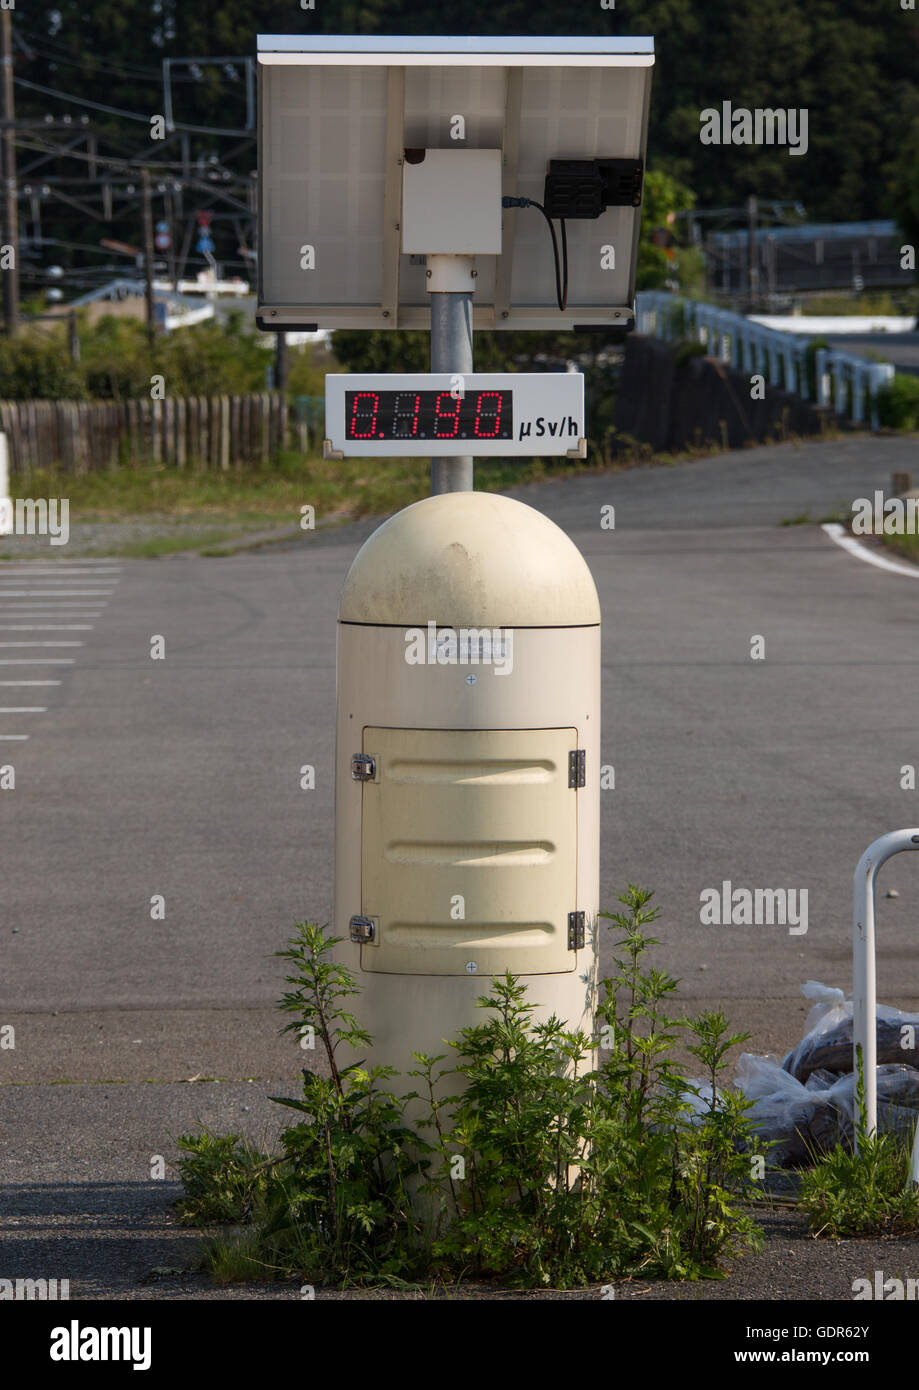 A radiation dosimeter placed in a highly contaminated area after the daiichi nuclear power plant irradiation, Fukushima - Stock Image